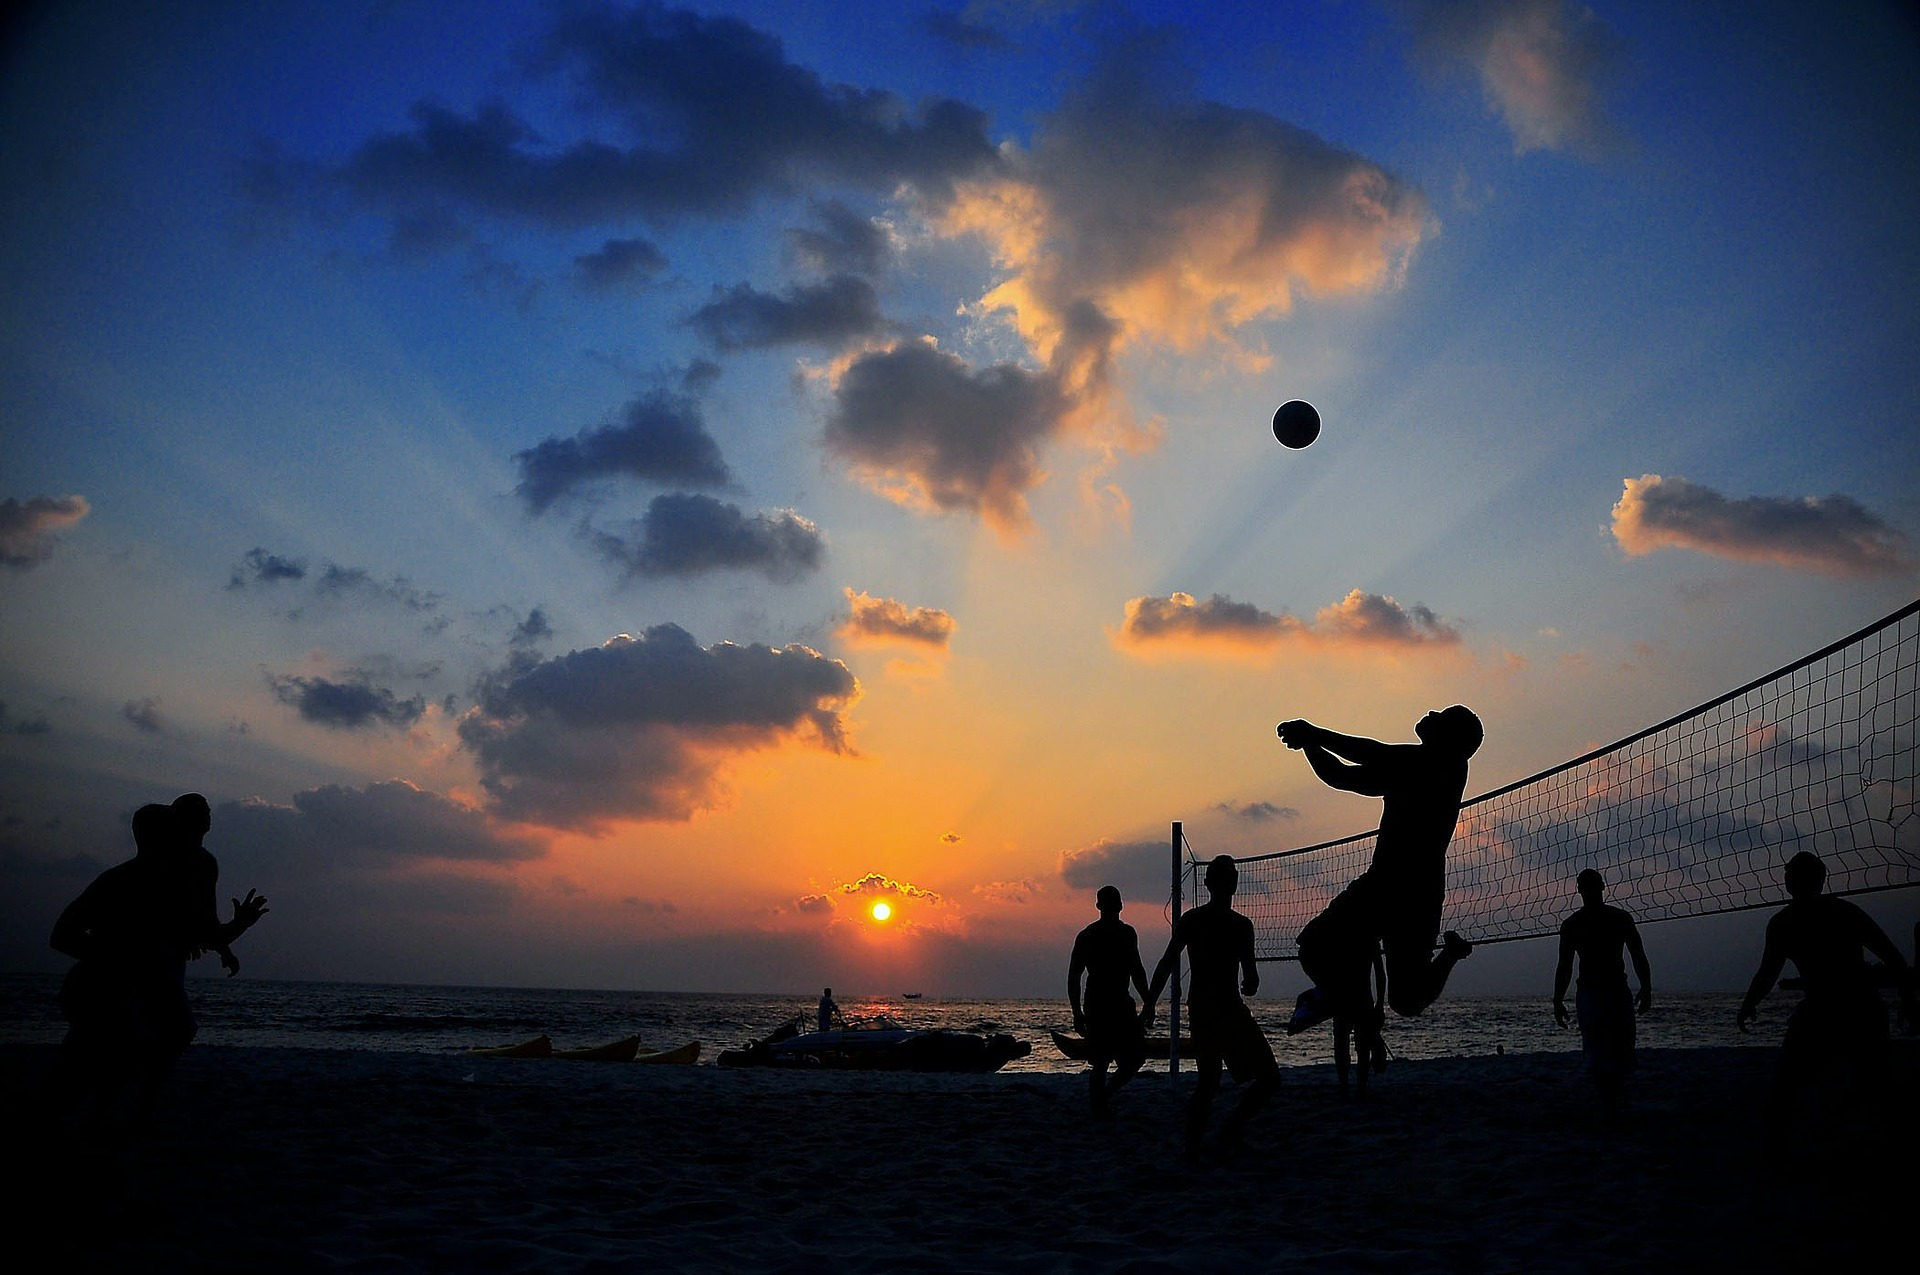 Summer beach volleyball at sunset